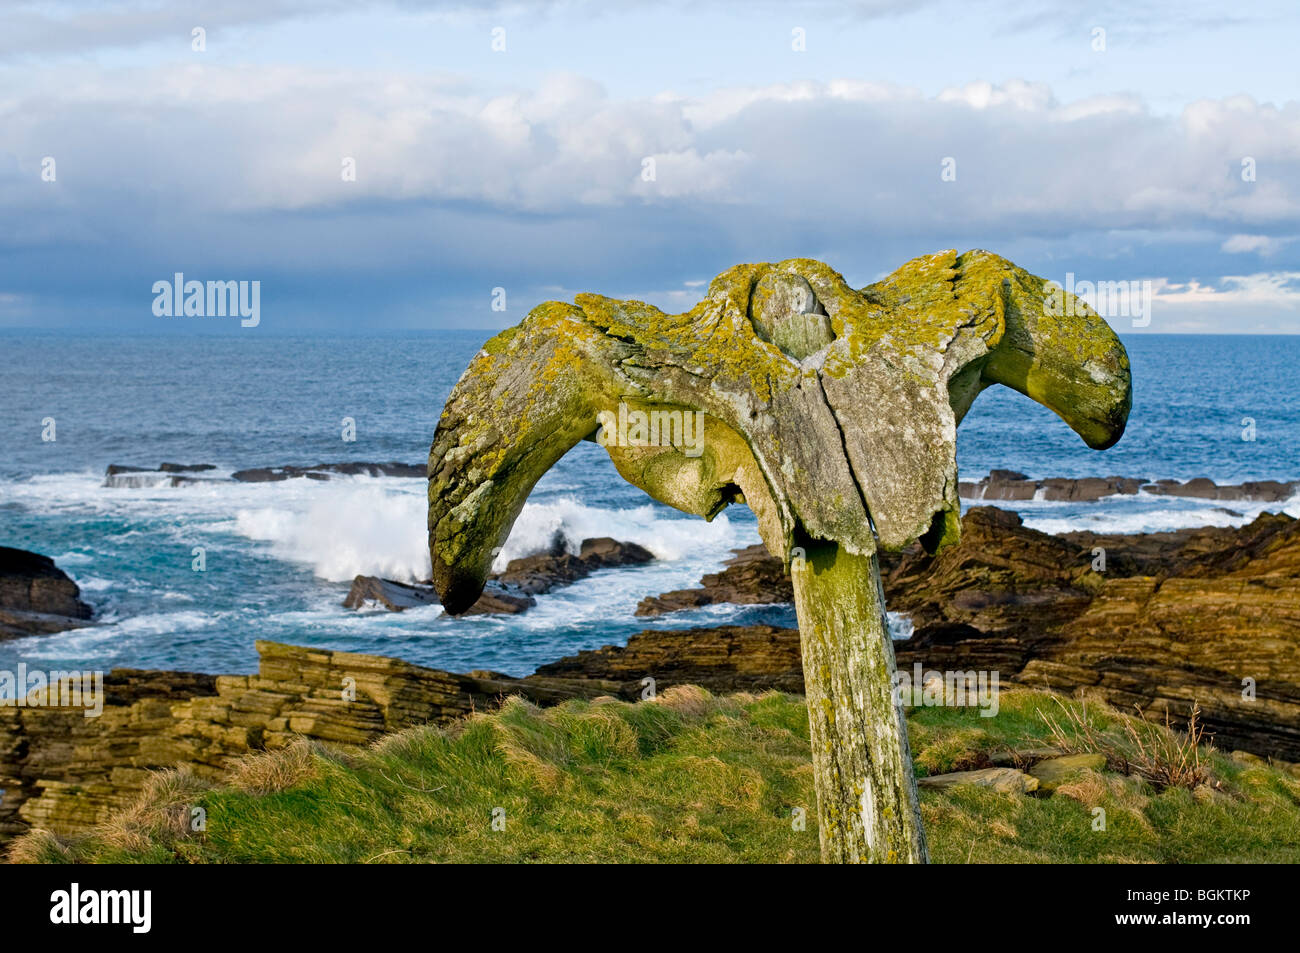 The Birsay whalebone erected on the coastal path from the remains of a beached whale c. 1876.   SCO 5870 - Stock Image